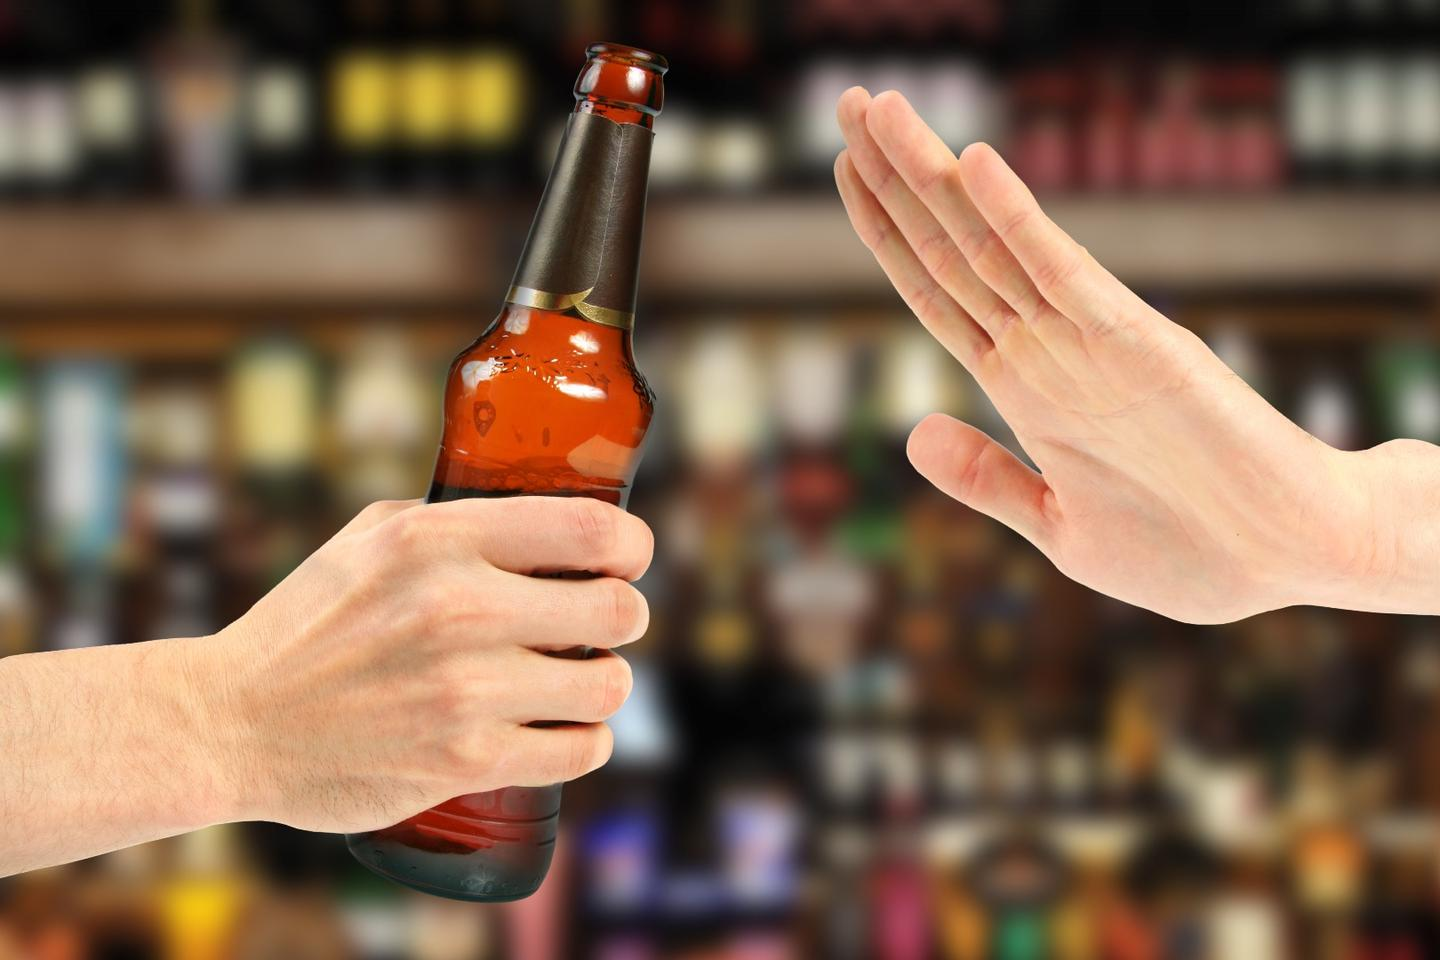 A new study has clarified the way alcohol damages DNA and potentially results in cancer